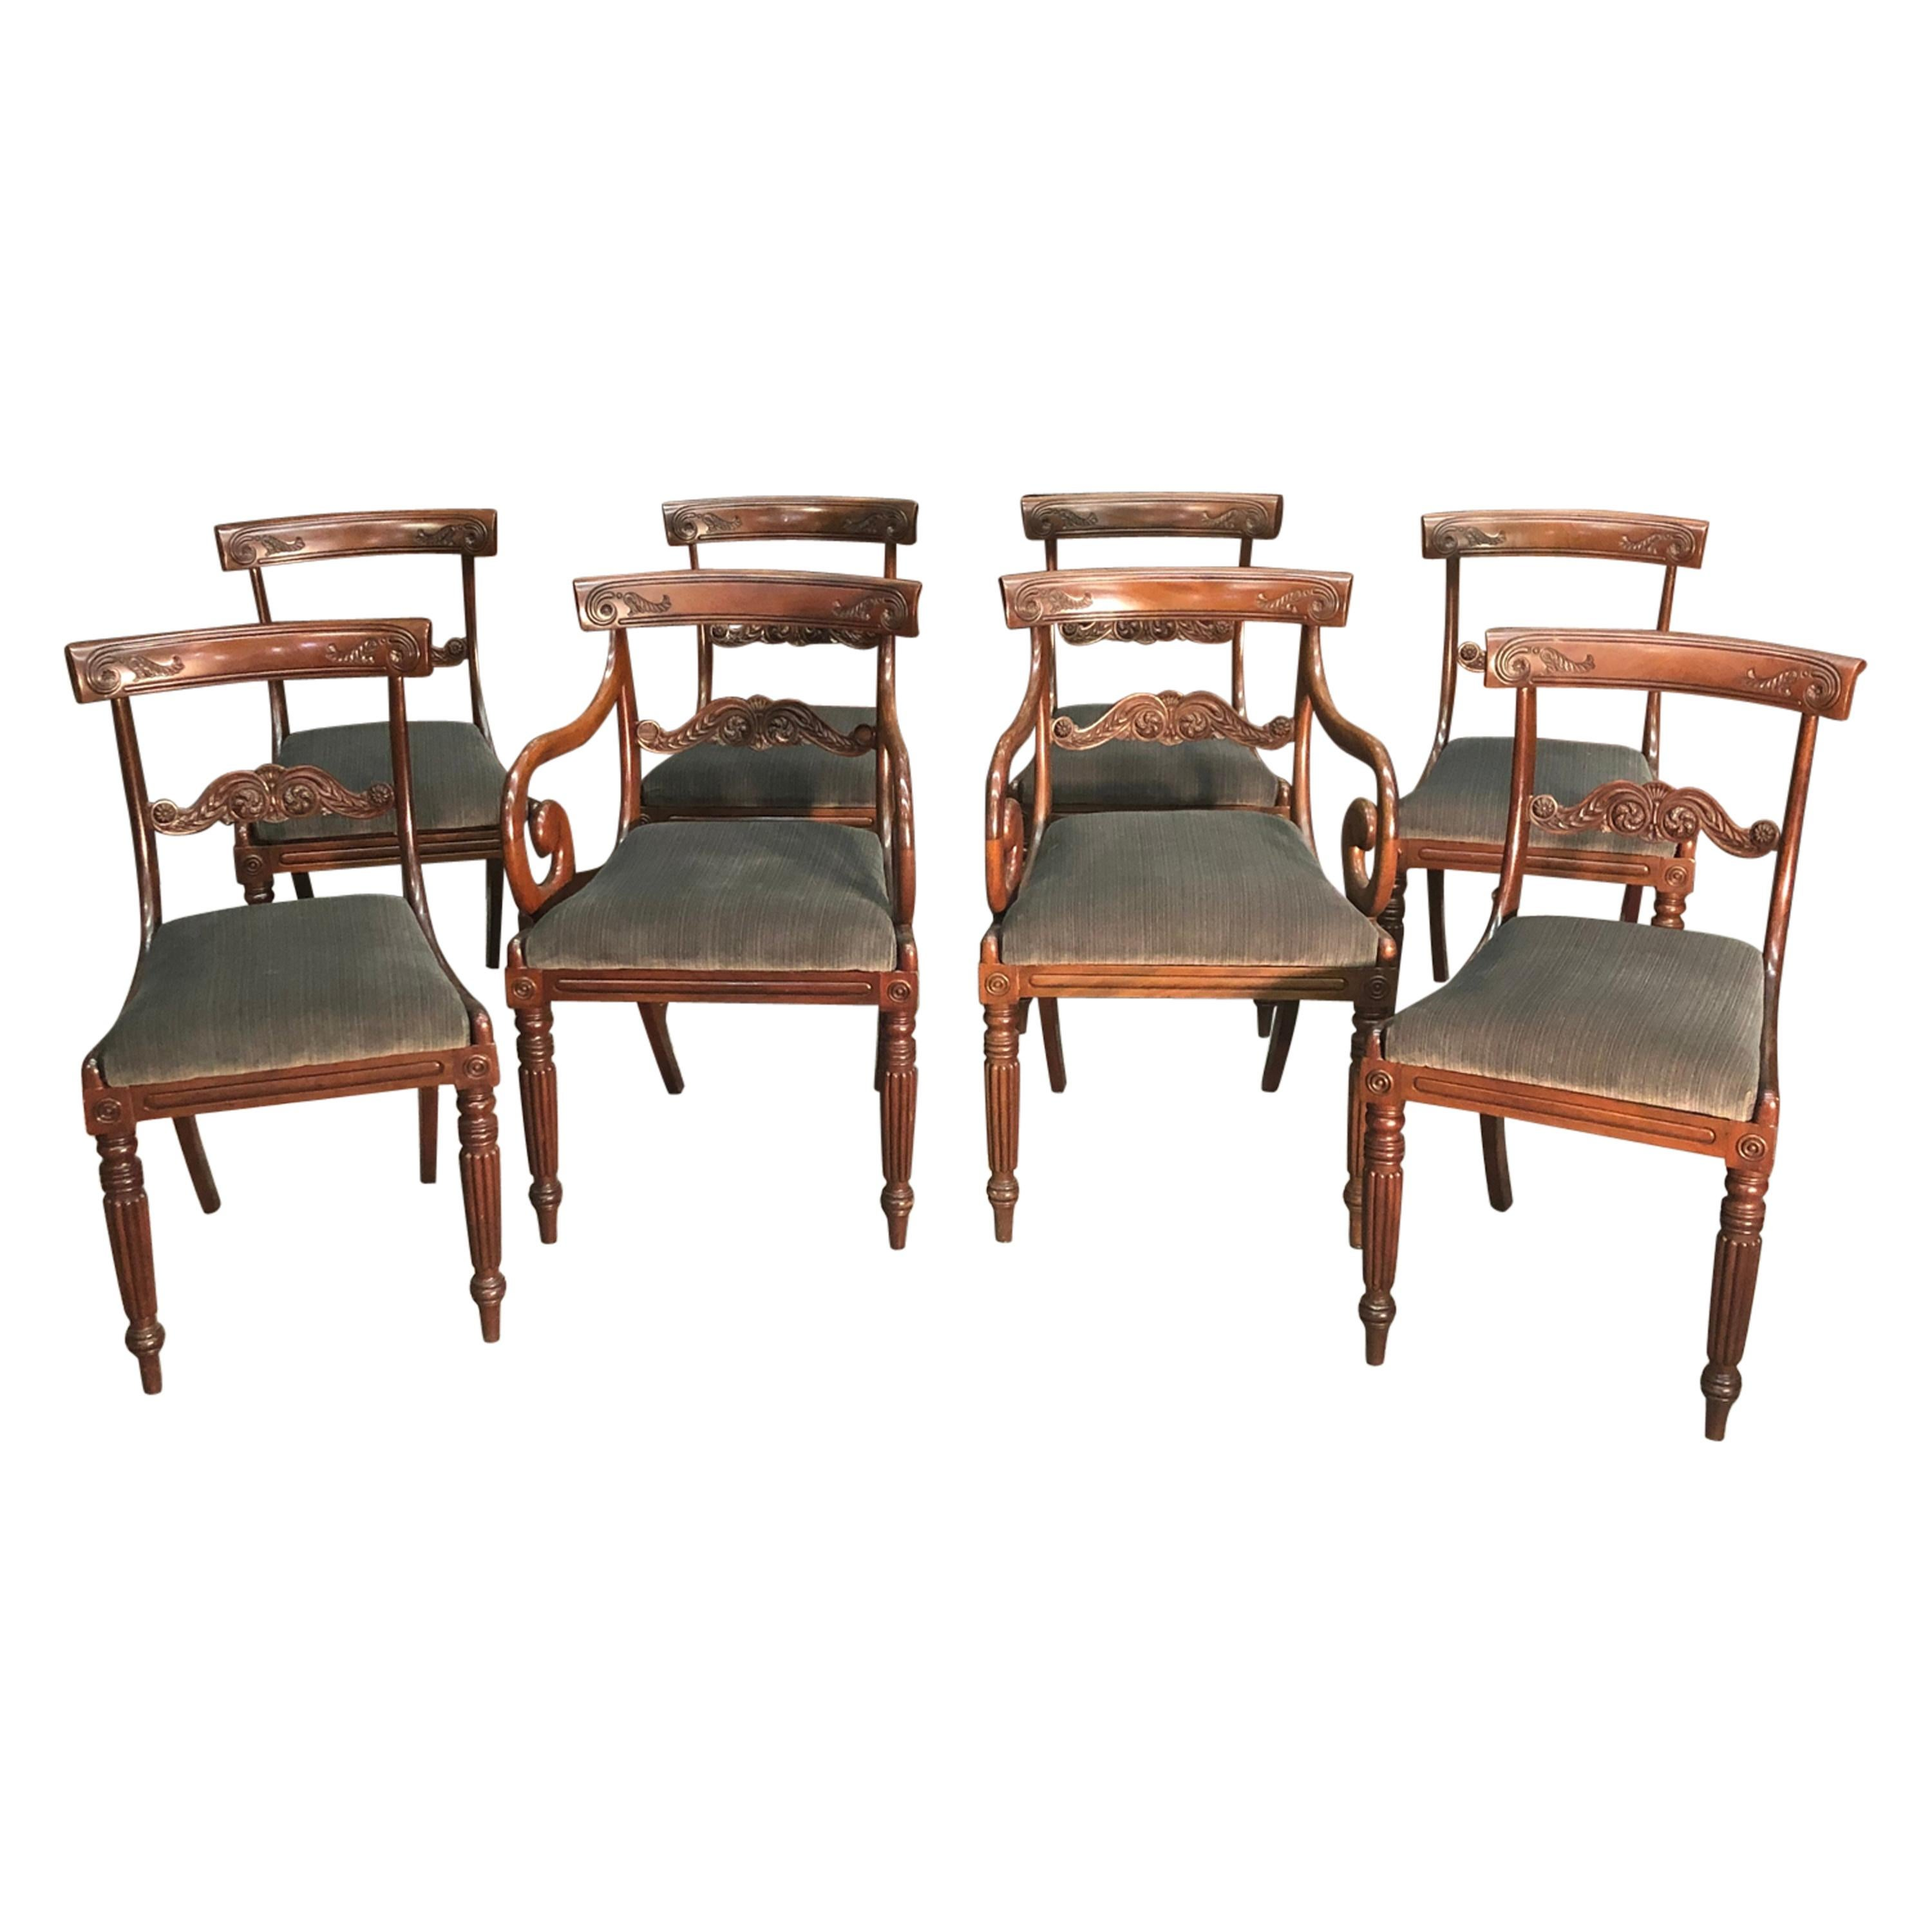 Eight English Regency Period Mahogany Dining Chairs, Early 19th Century